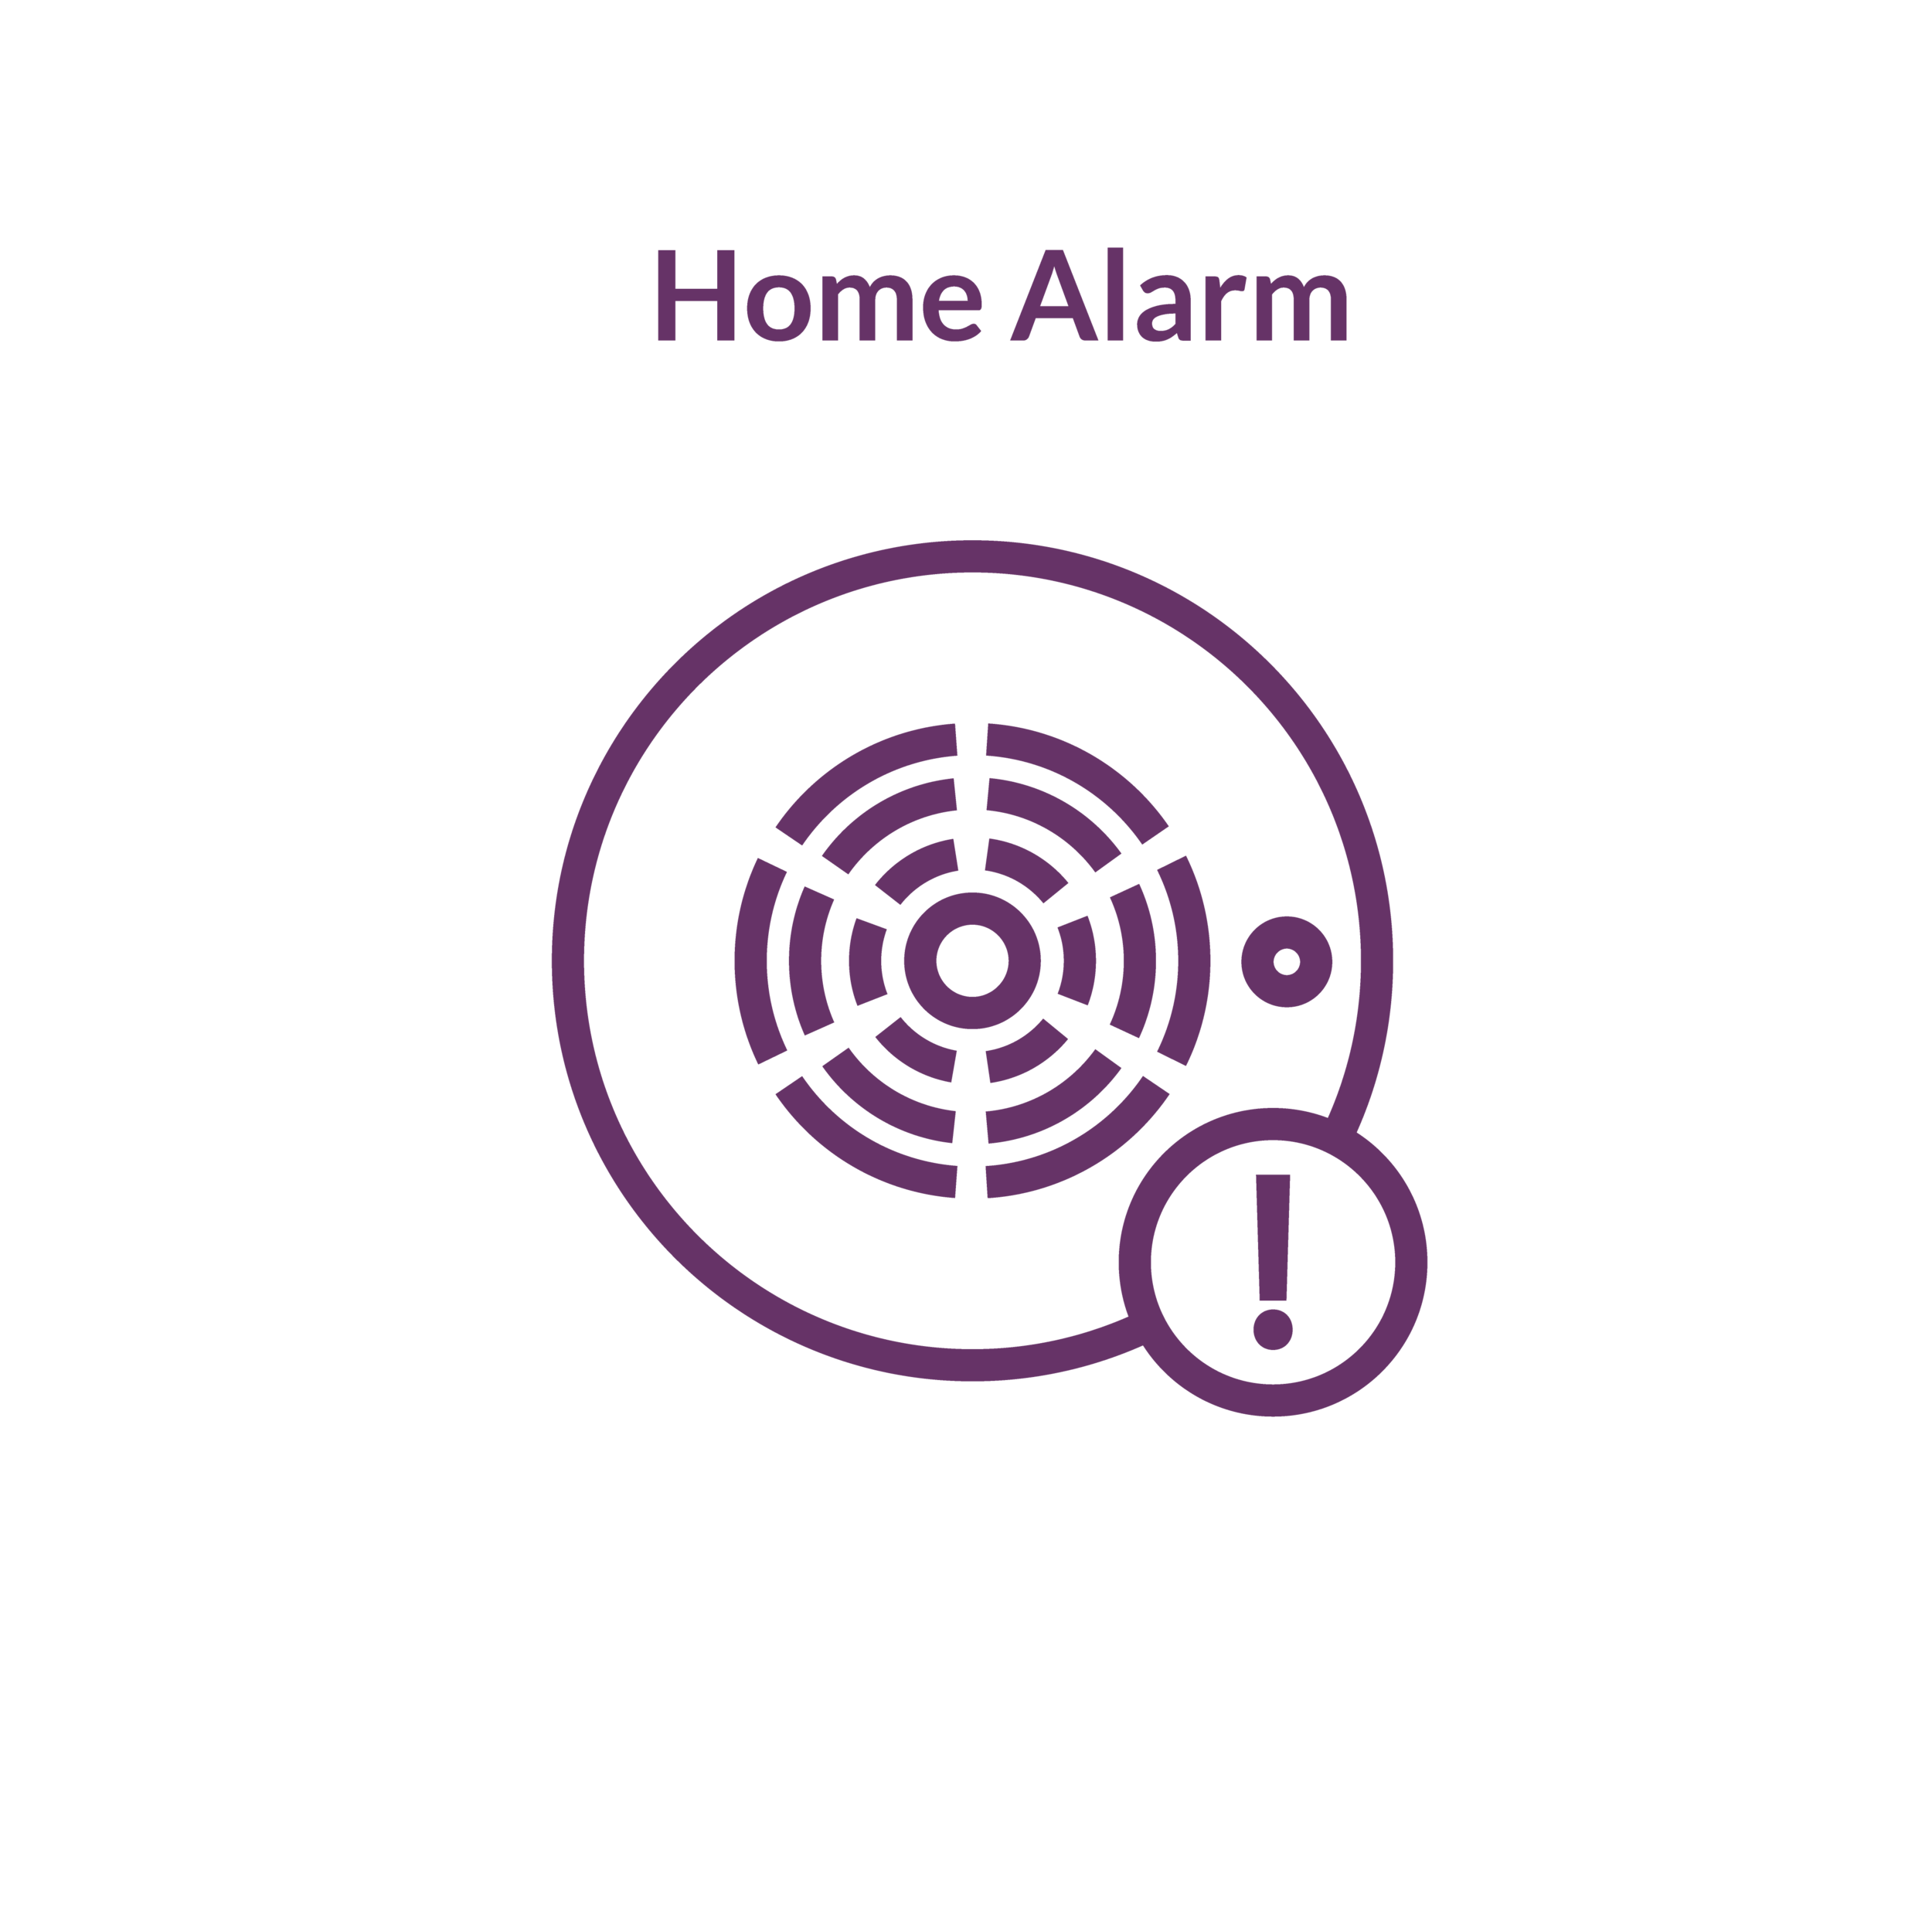 homealarm-01.png